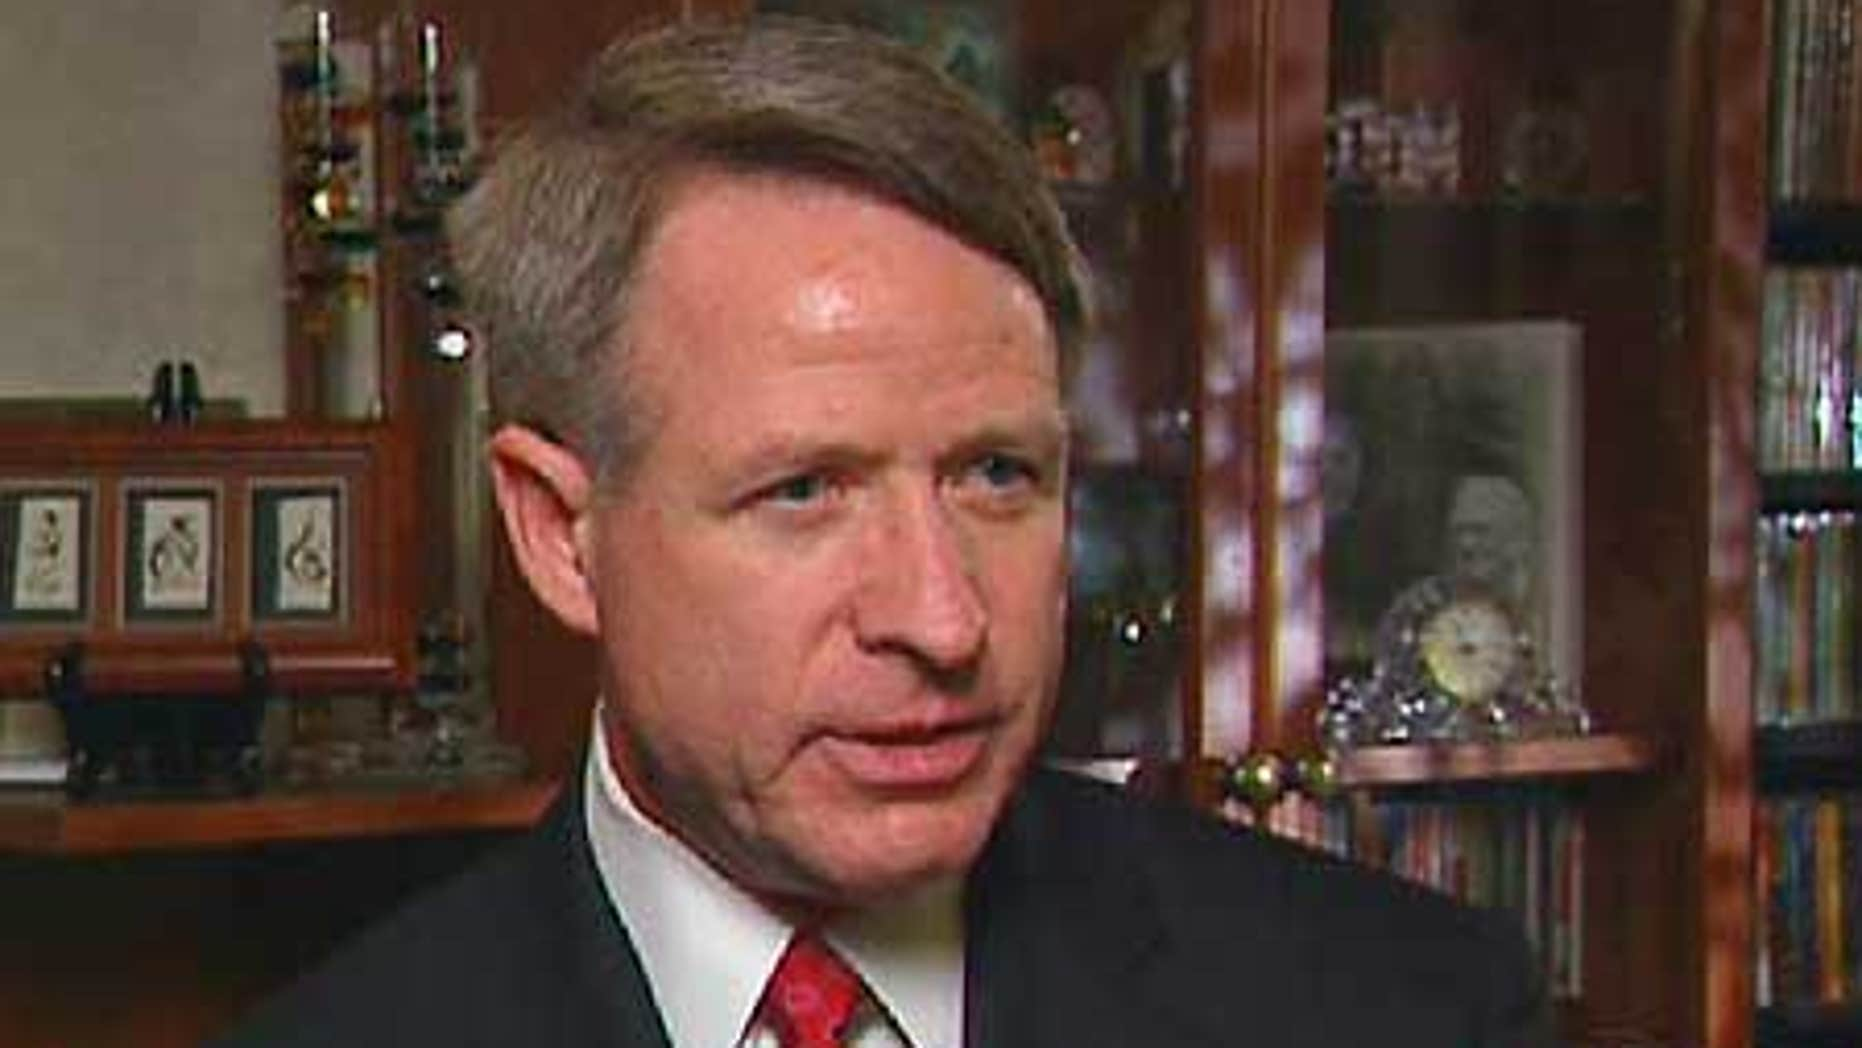 Former Navy Cmdr. Kirk Lippold, who commanded the USS Cole when terrorists struck it in October 2000, killing 17.